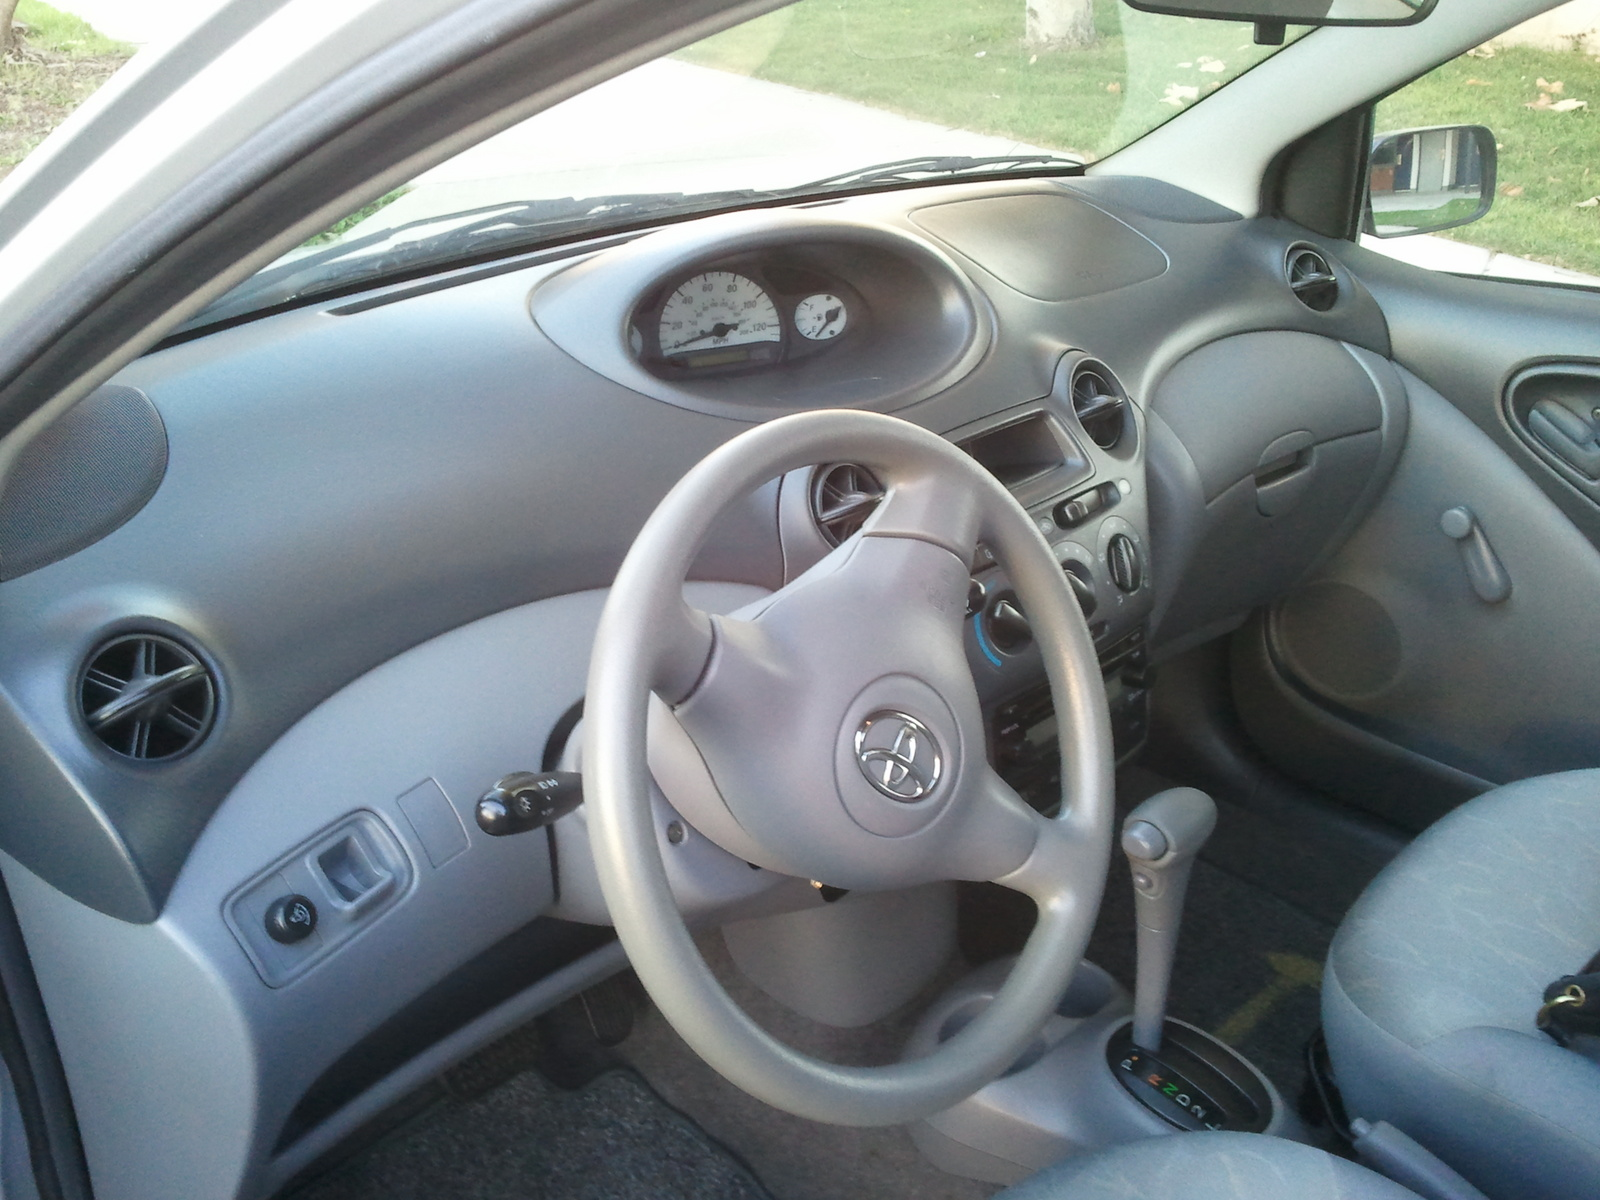 Toyota ECHO interior #1